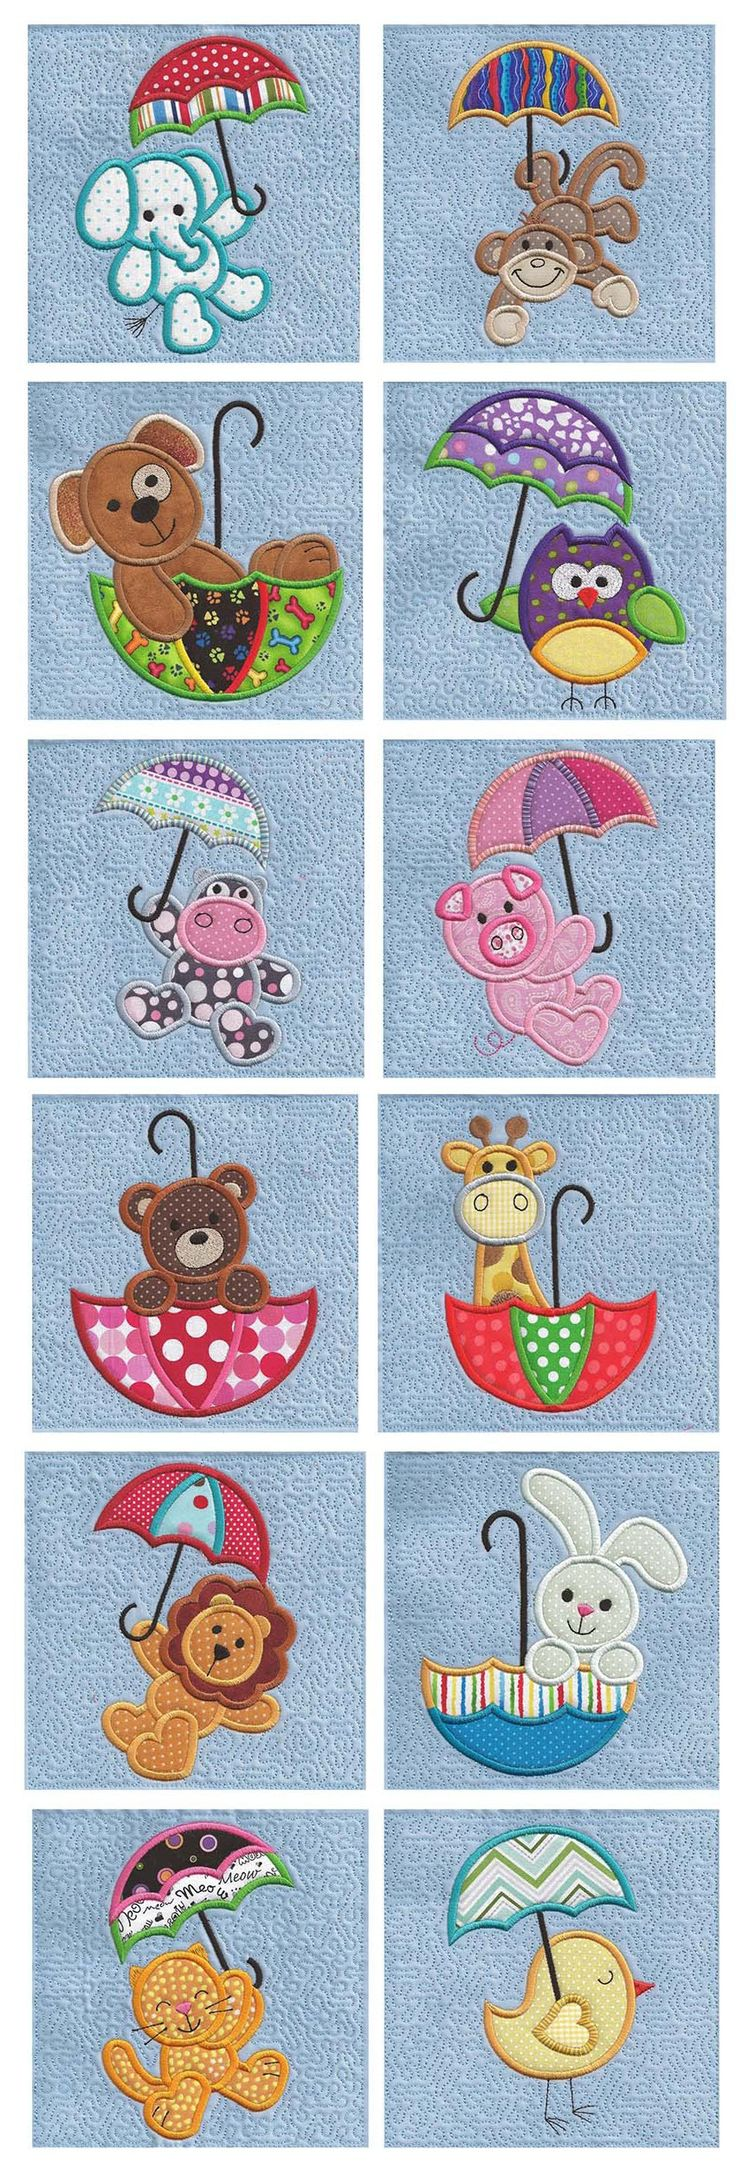 Cute Umbrella Critters Applique design set available for instant download at www.designsbyjuju.com